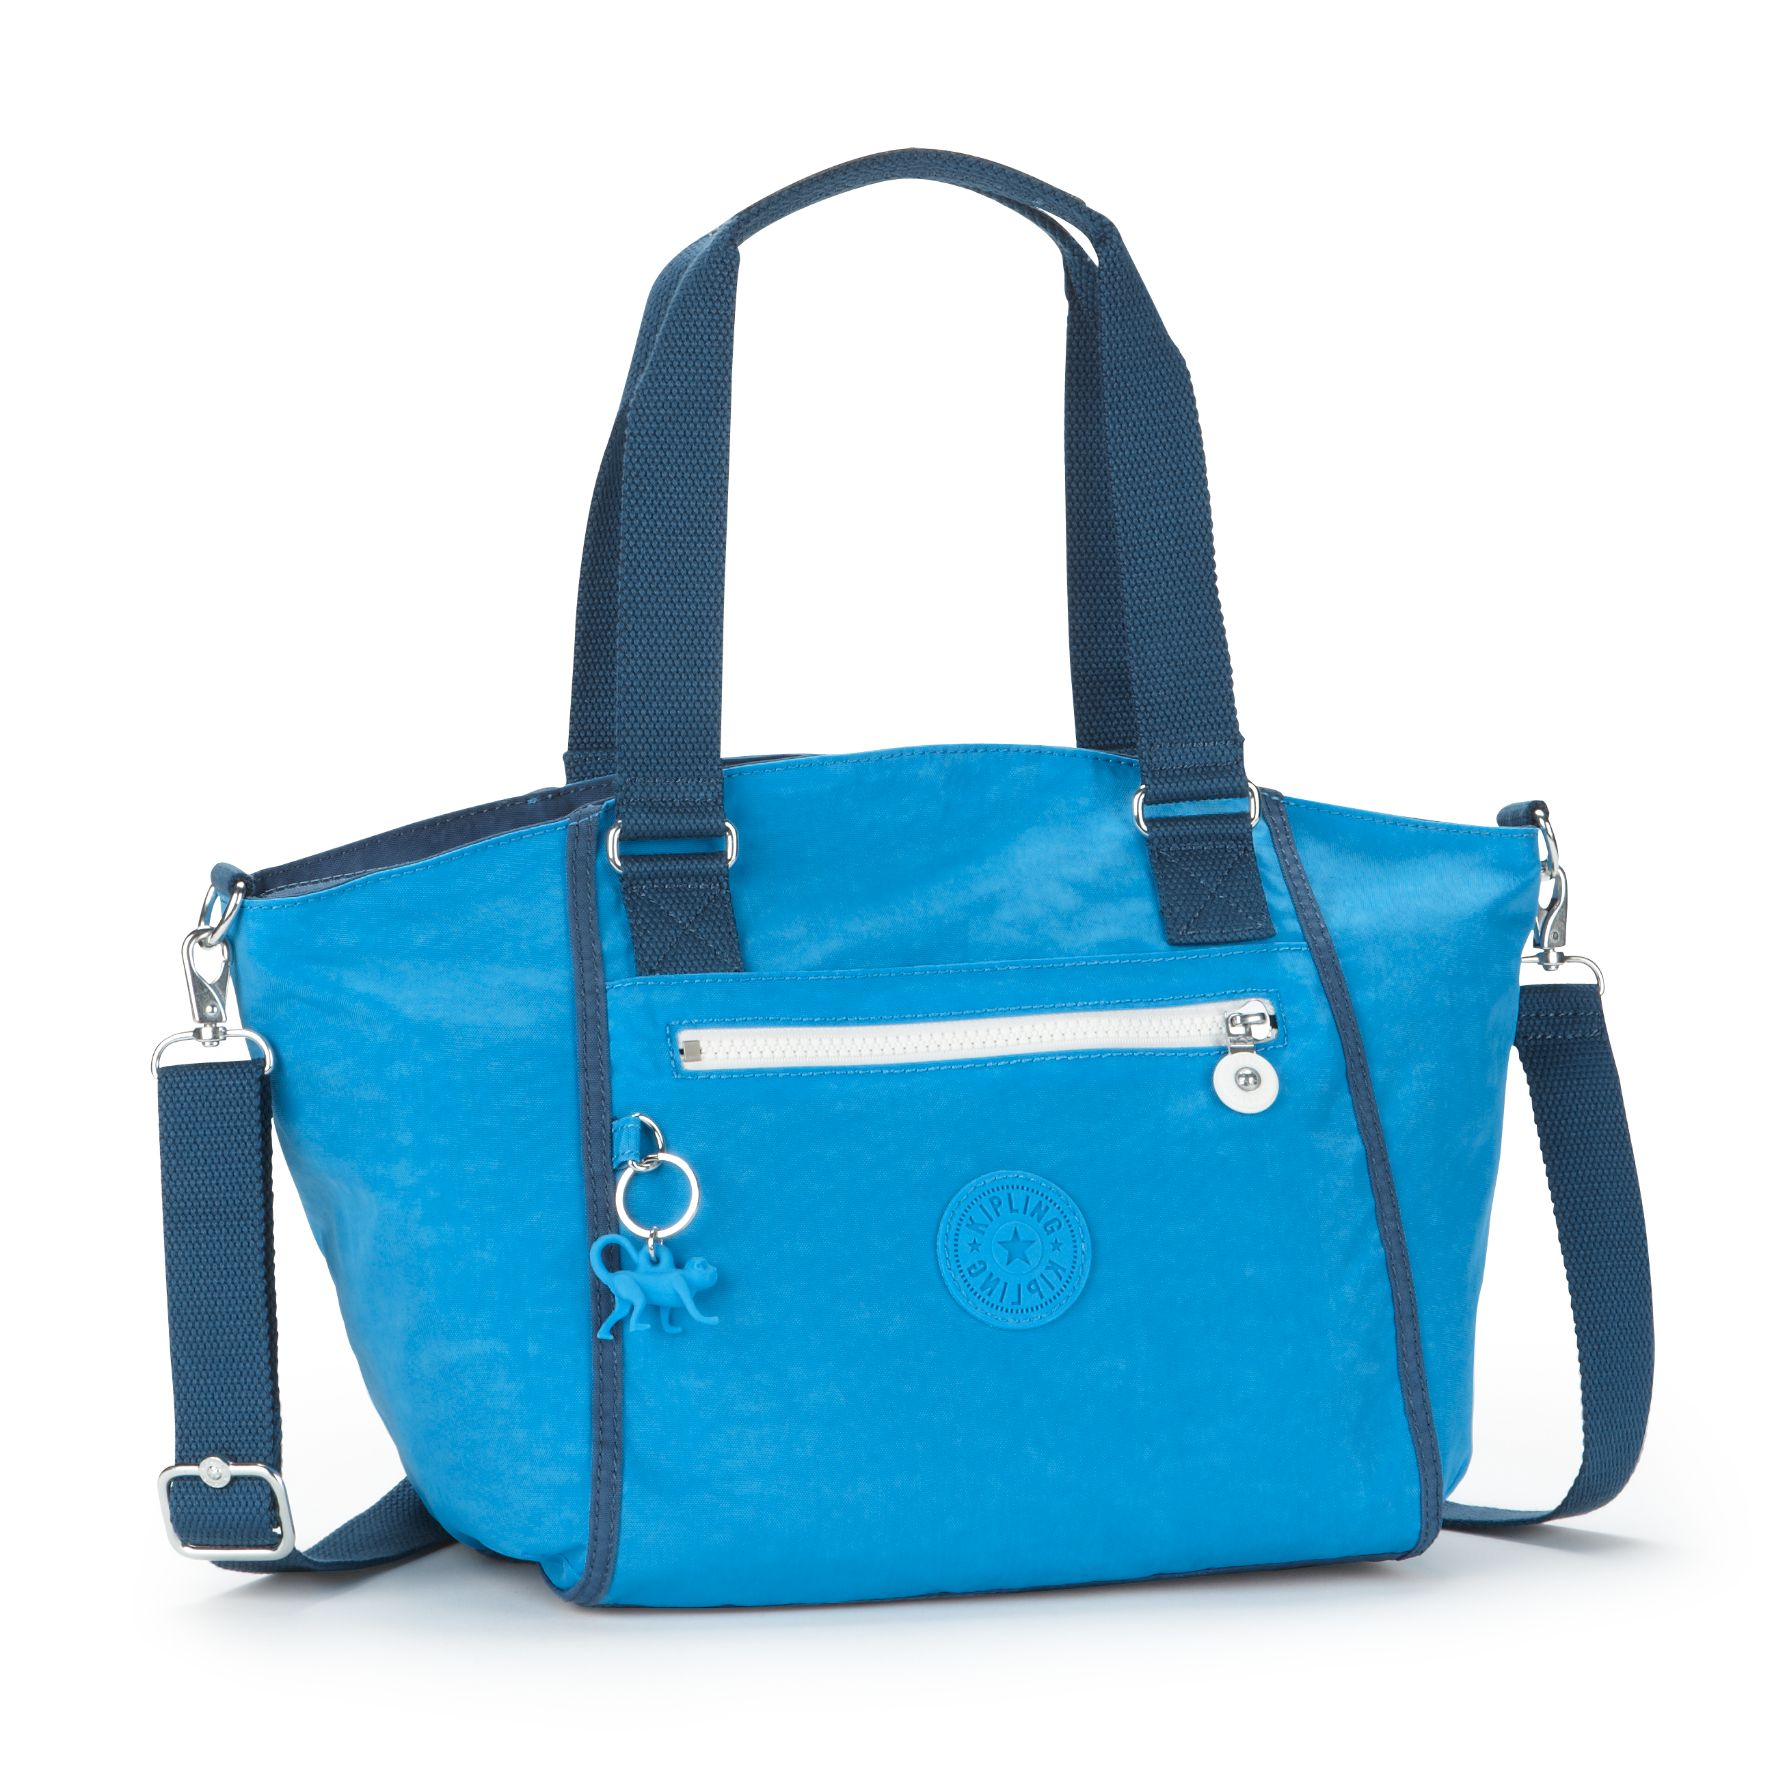 Amberley medium shoulder bag